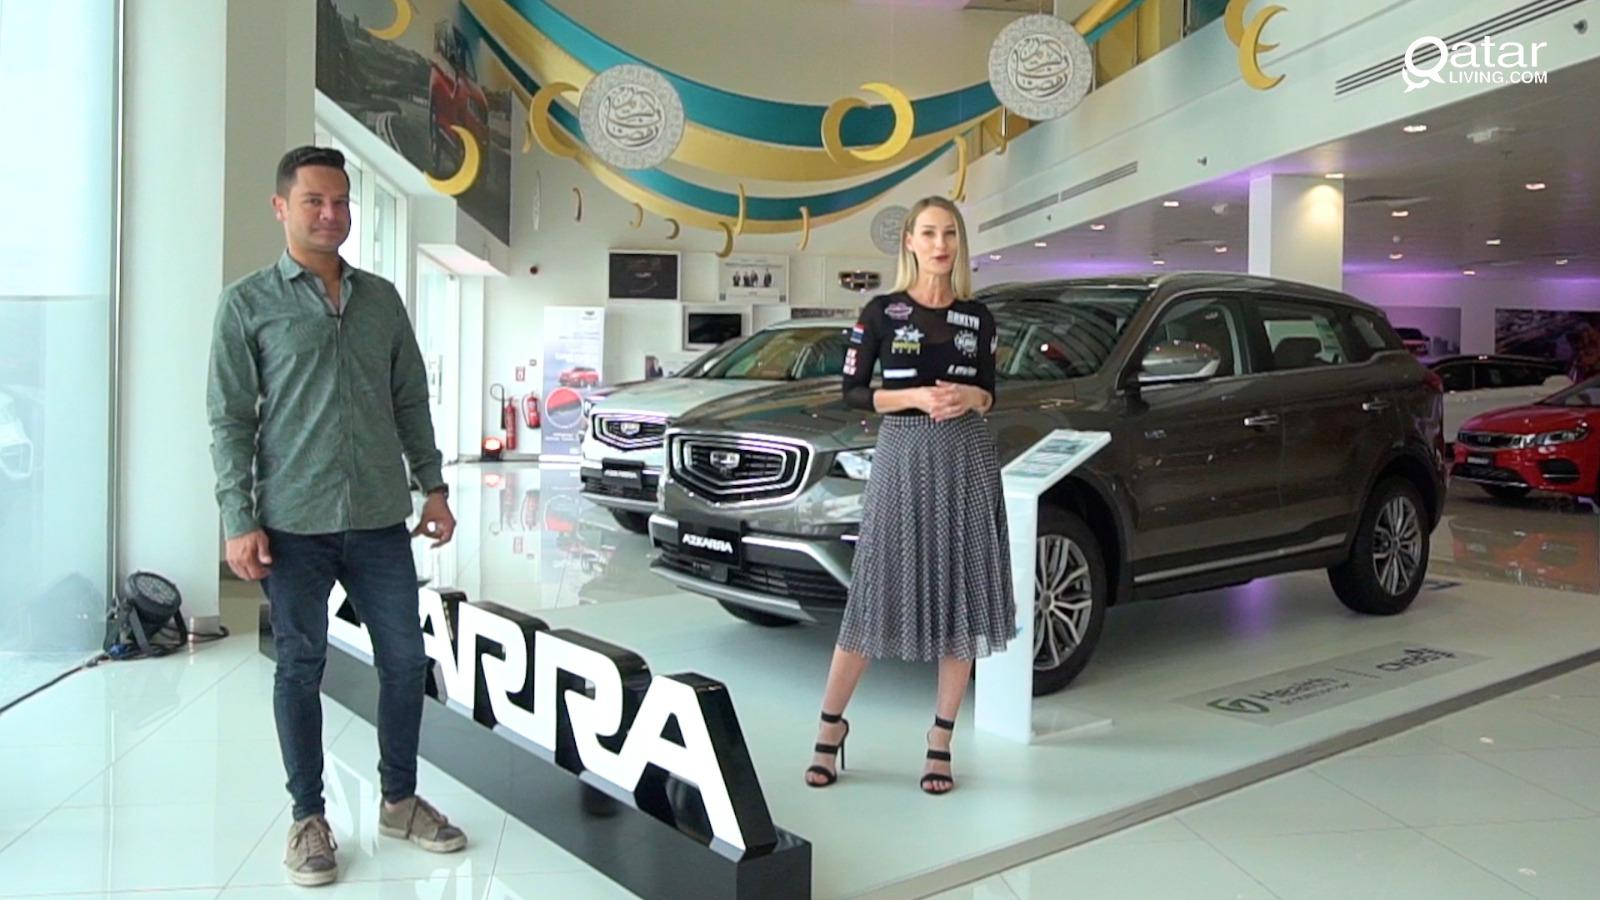 WATCH: Geely offers special Ramadan prices and benefits